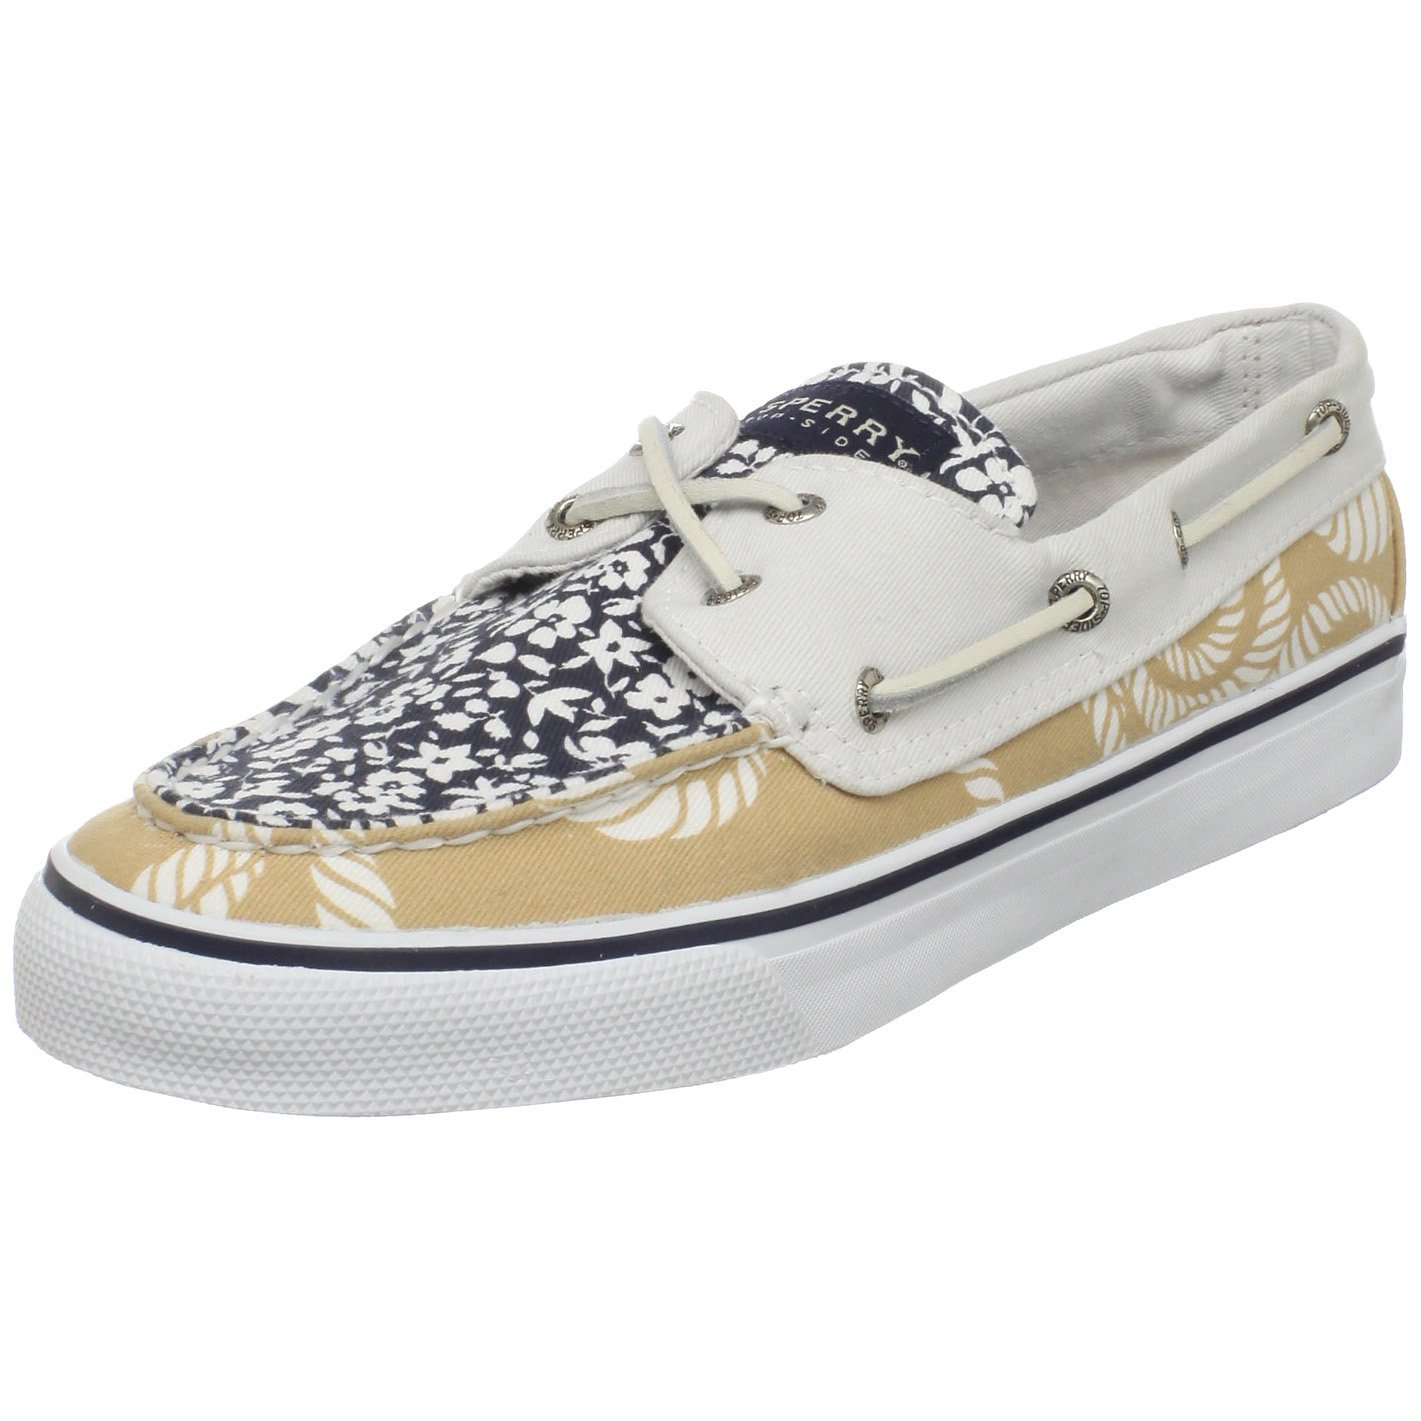 White Sperry Boat Shoes Womens